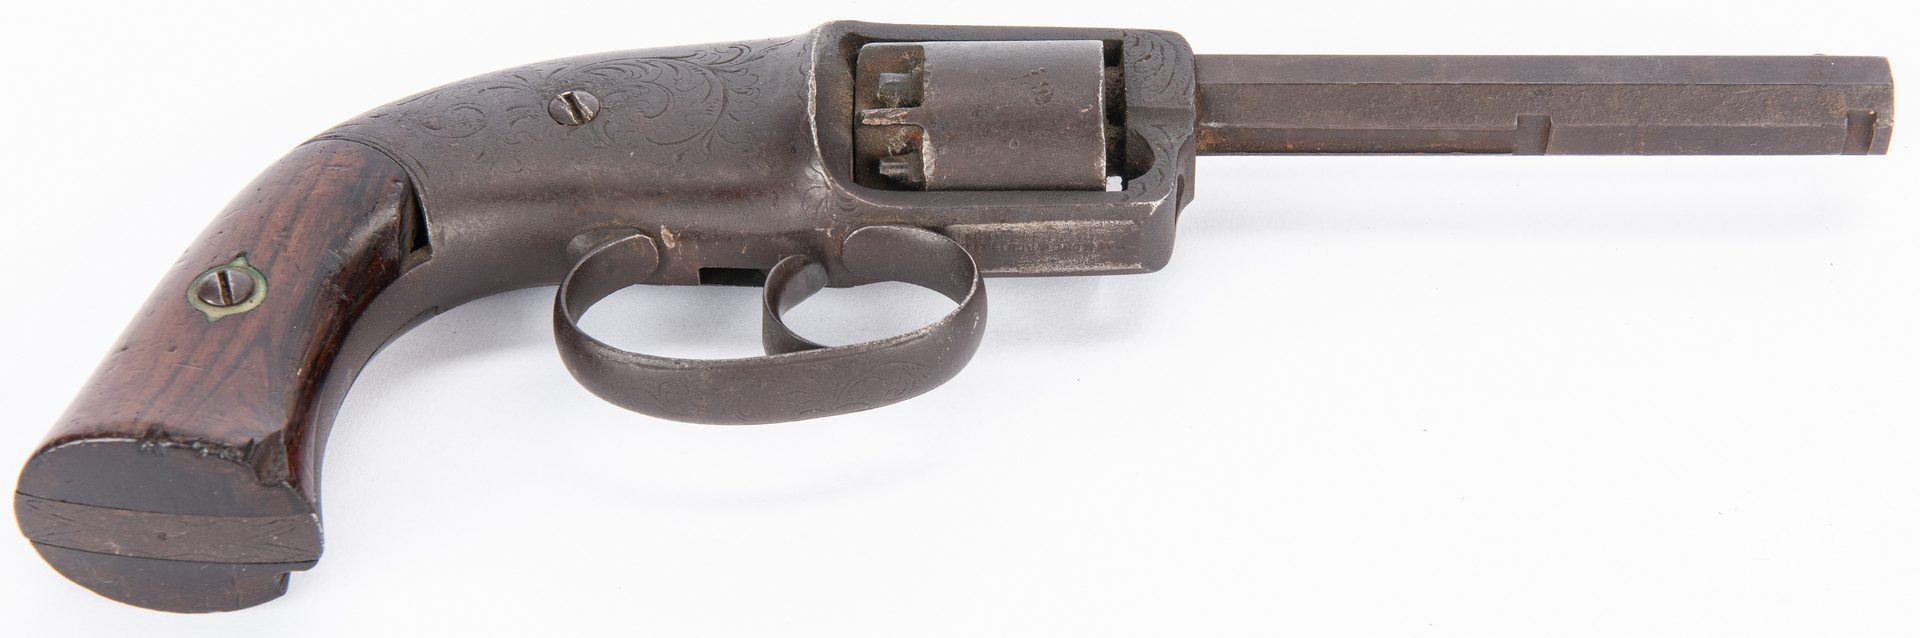 Lot 395: Civil War era C.S. Pettengill DA Navy Model Revolver, .34 Cal.